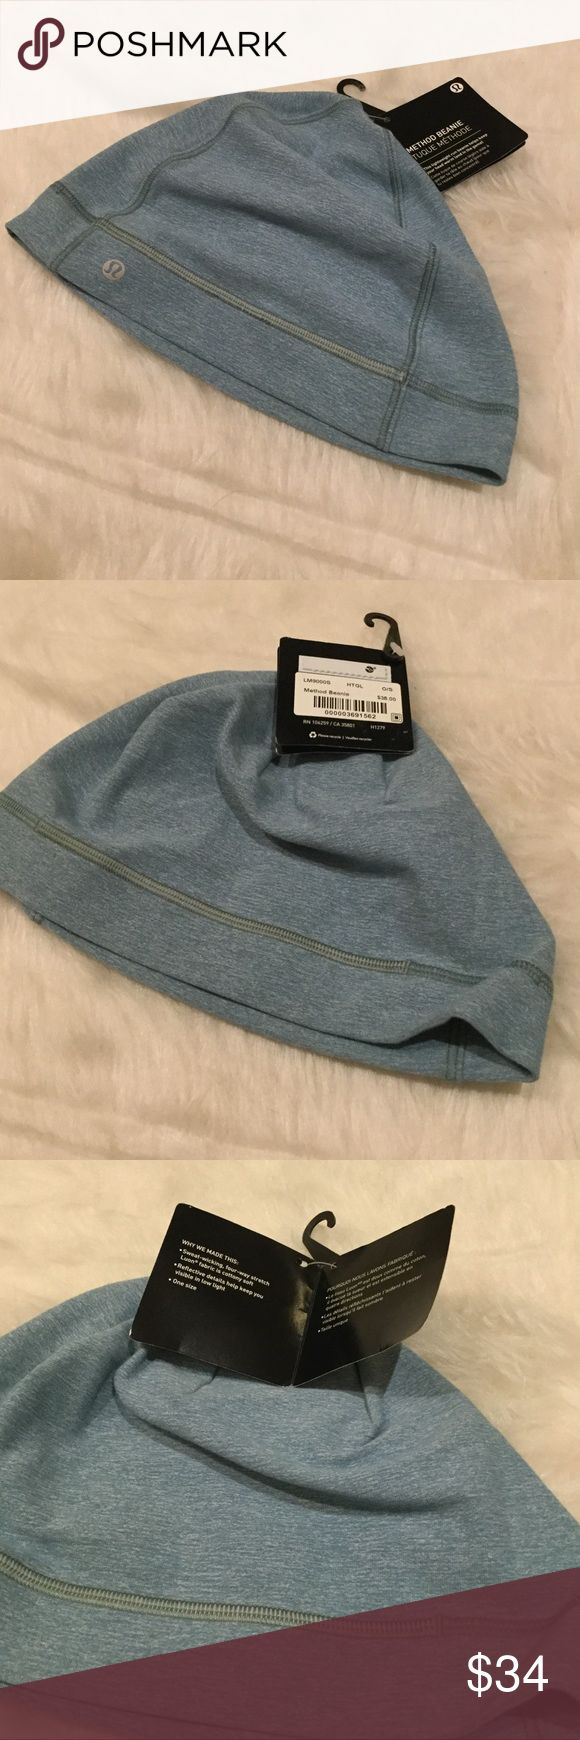 NWT Lululemon Method Beanie This beanie is great for lightweight warmth.  Stretchy, naturally breathable Rulu fabric is sweat-wicking and buttery soft.  Reflective detail helps keep you visible in low light.  Color: Heathered Glass.  Stock photos are to show fit--do not have the hat in grey. lululemon athletica Accessories Hats